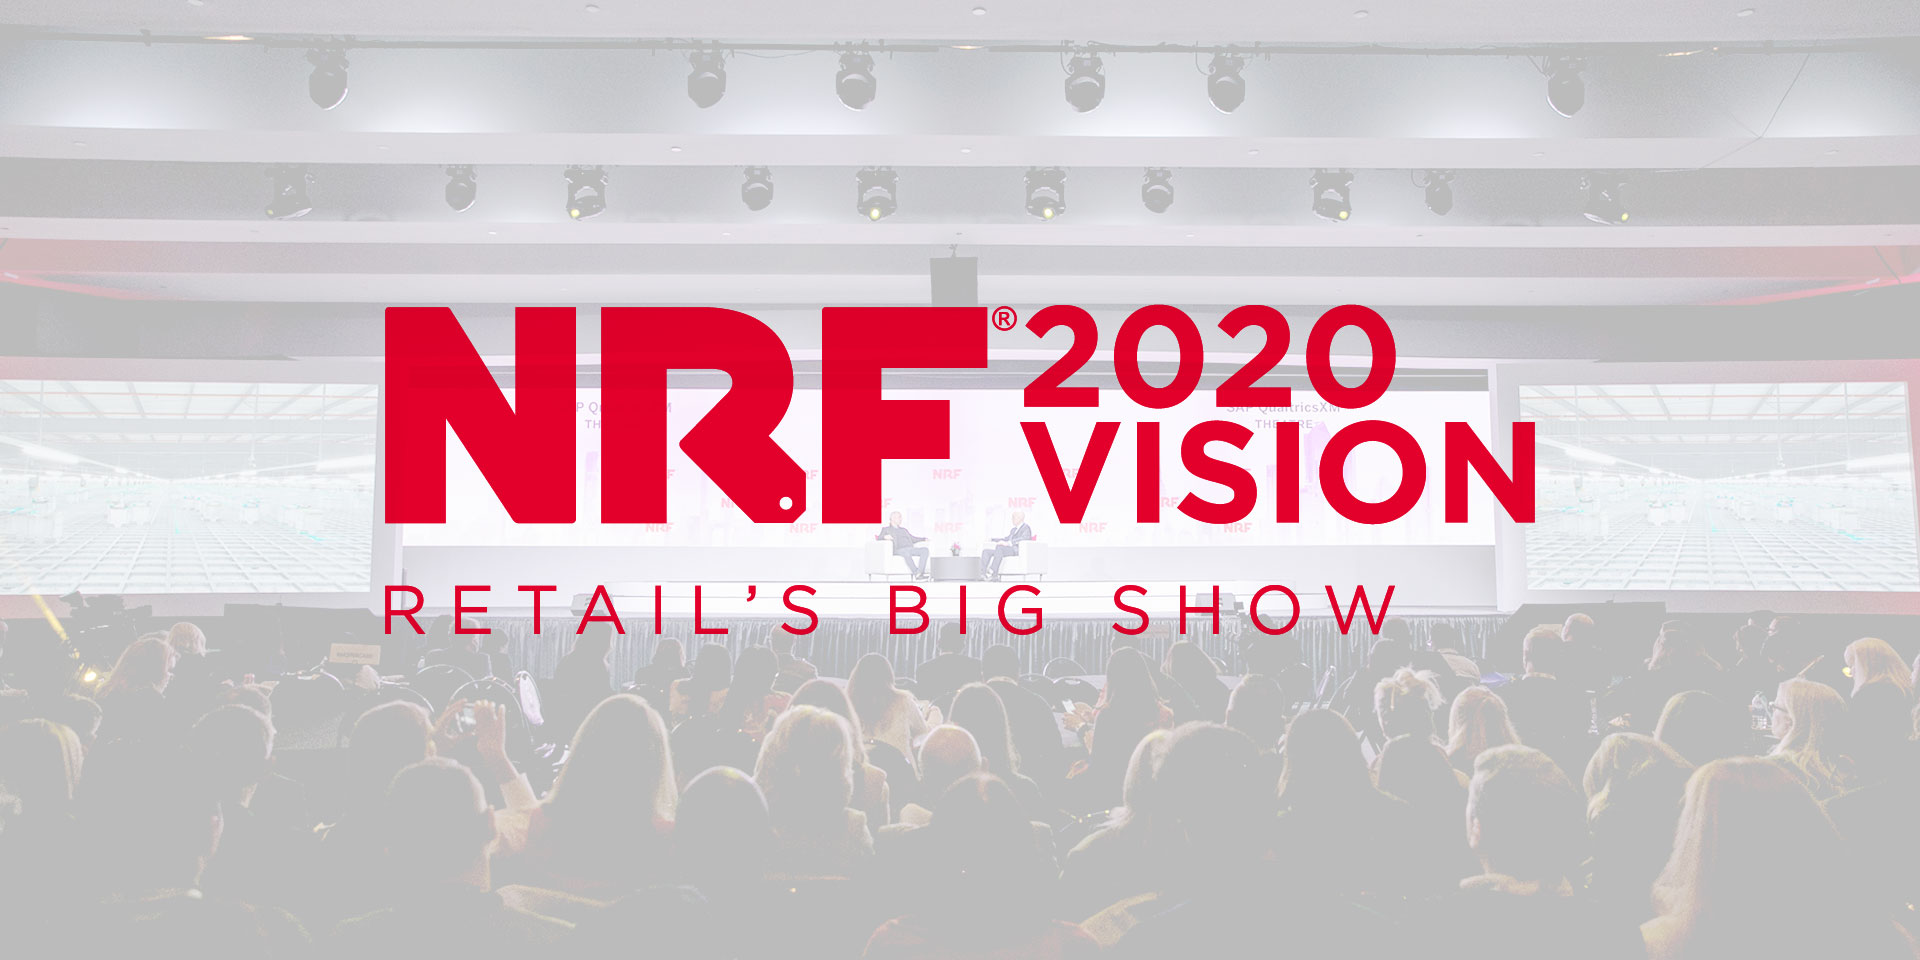 7 trends that will drive retail in 2020 according to NRF Retail's Big Show